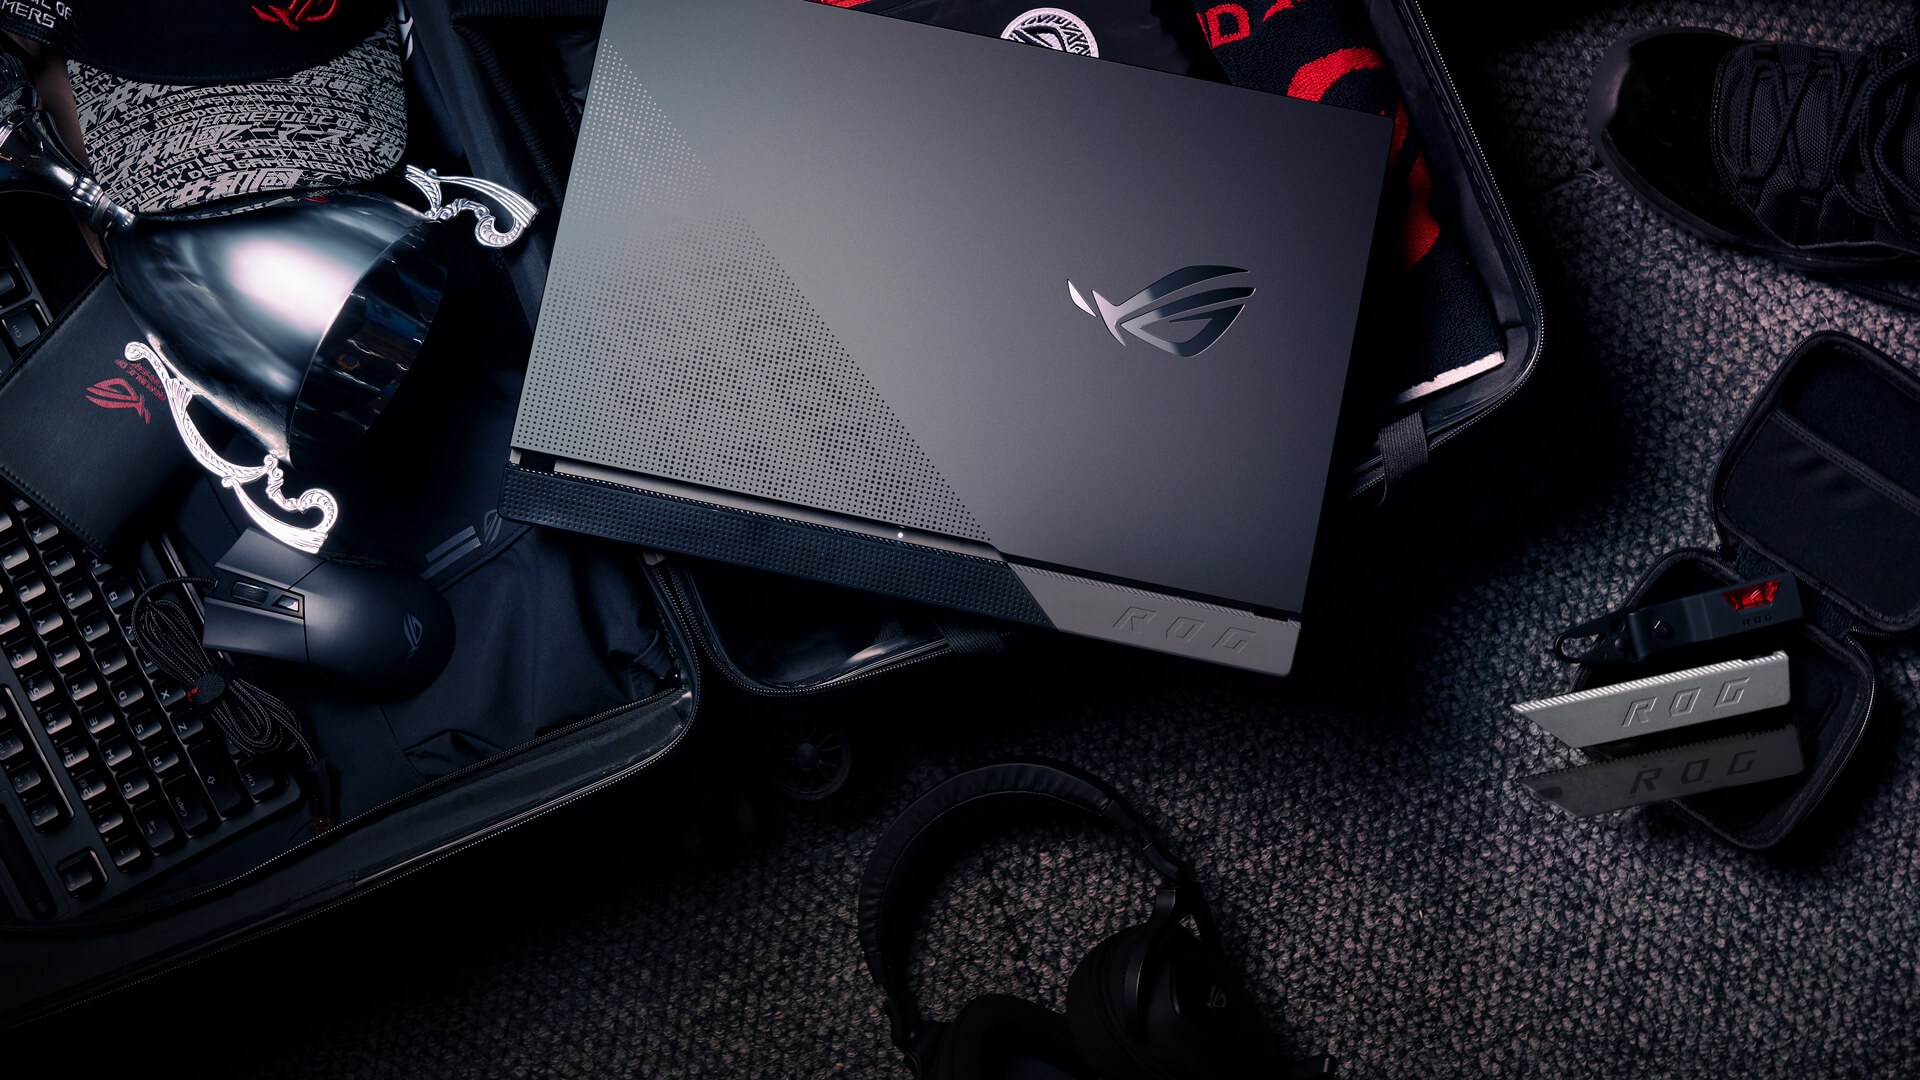 Top 5 reasons to BUY or NOT to buy the ASUS ROG Strix SCAR 17 G733